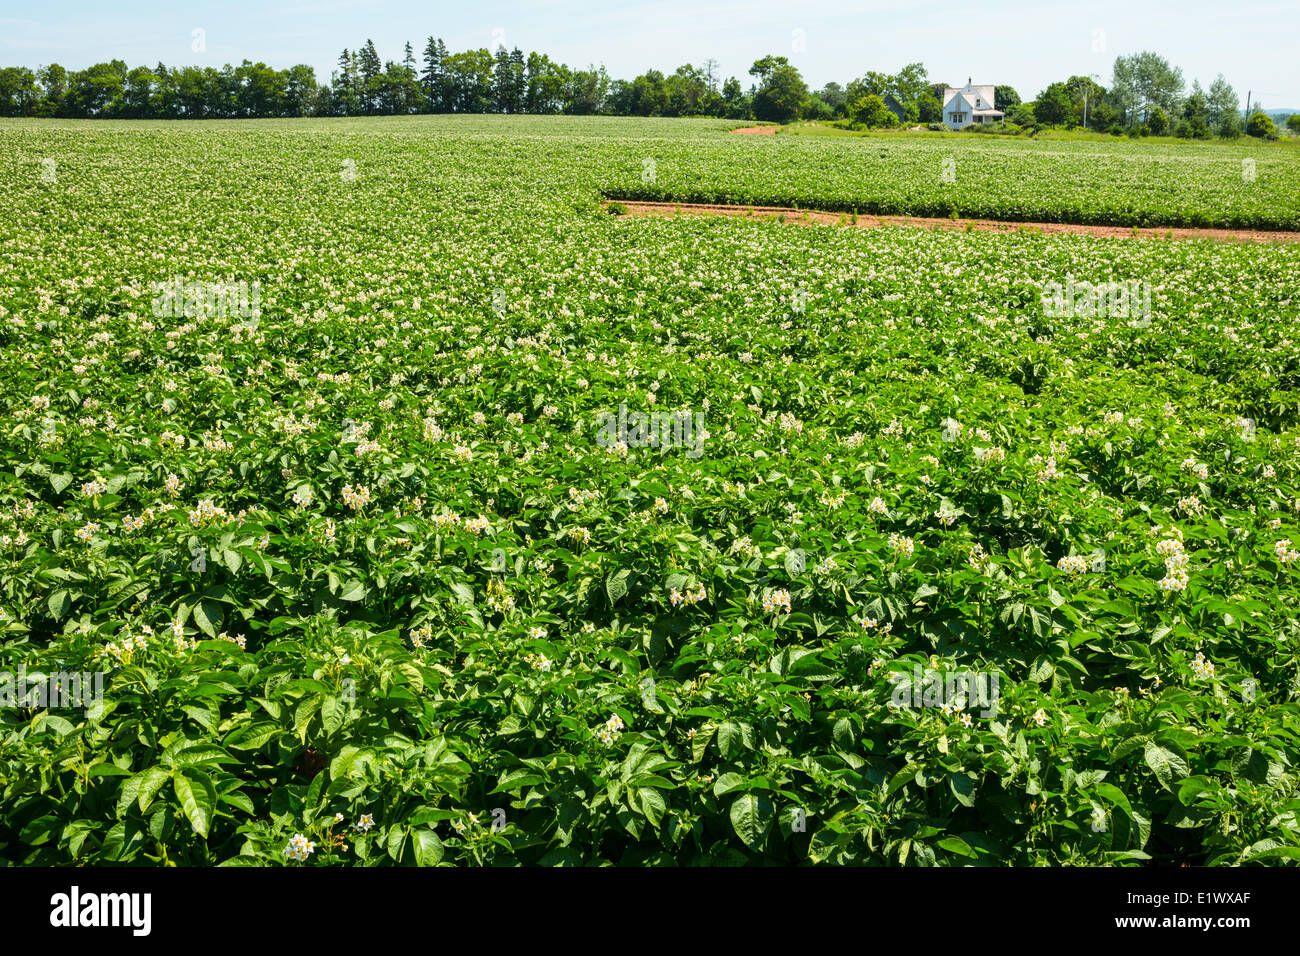 Potato field, Point Prim,  Prince Edward Island, Canada - Stock Image